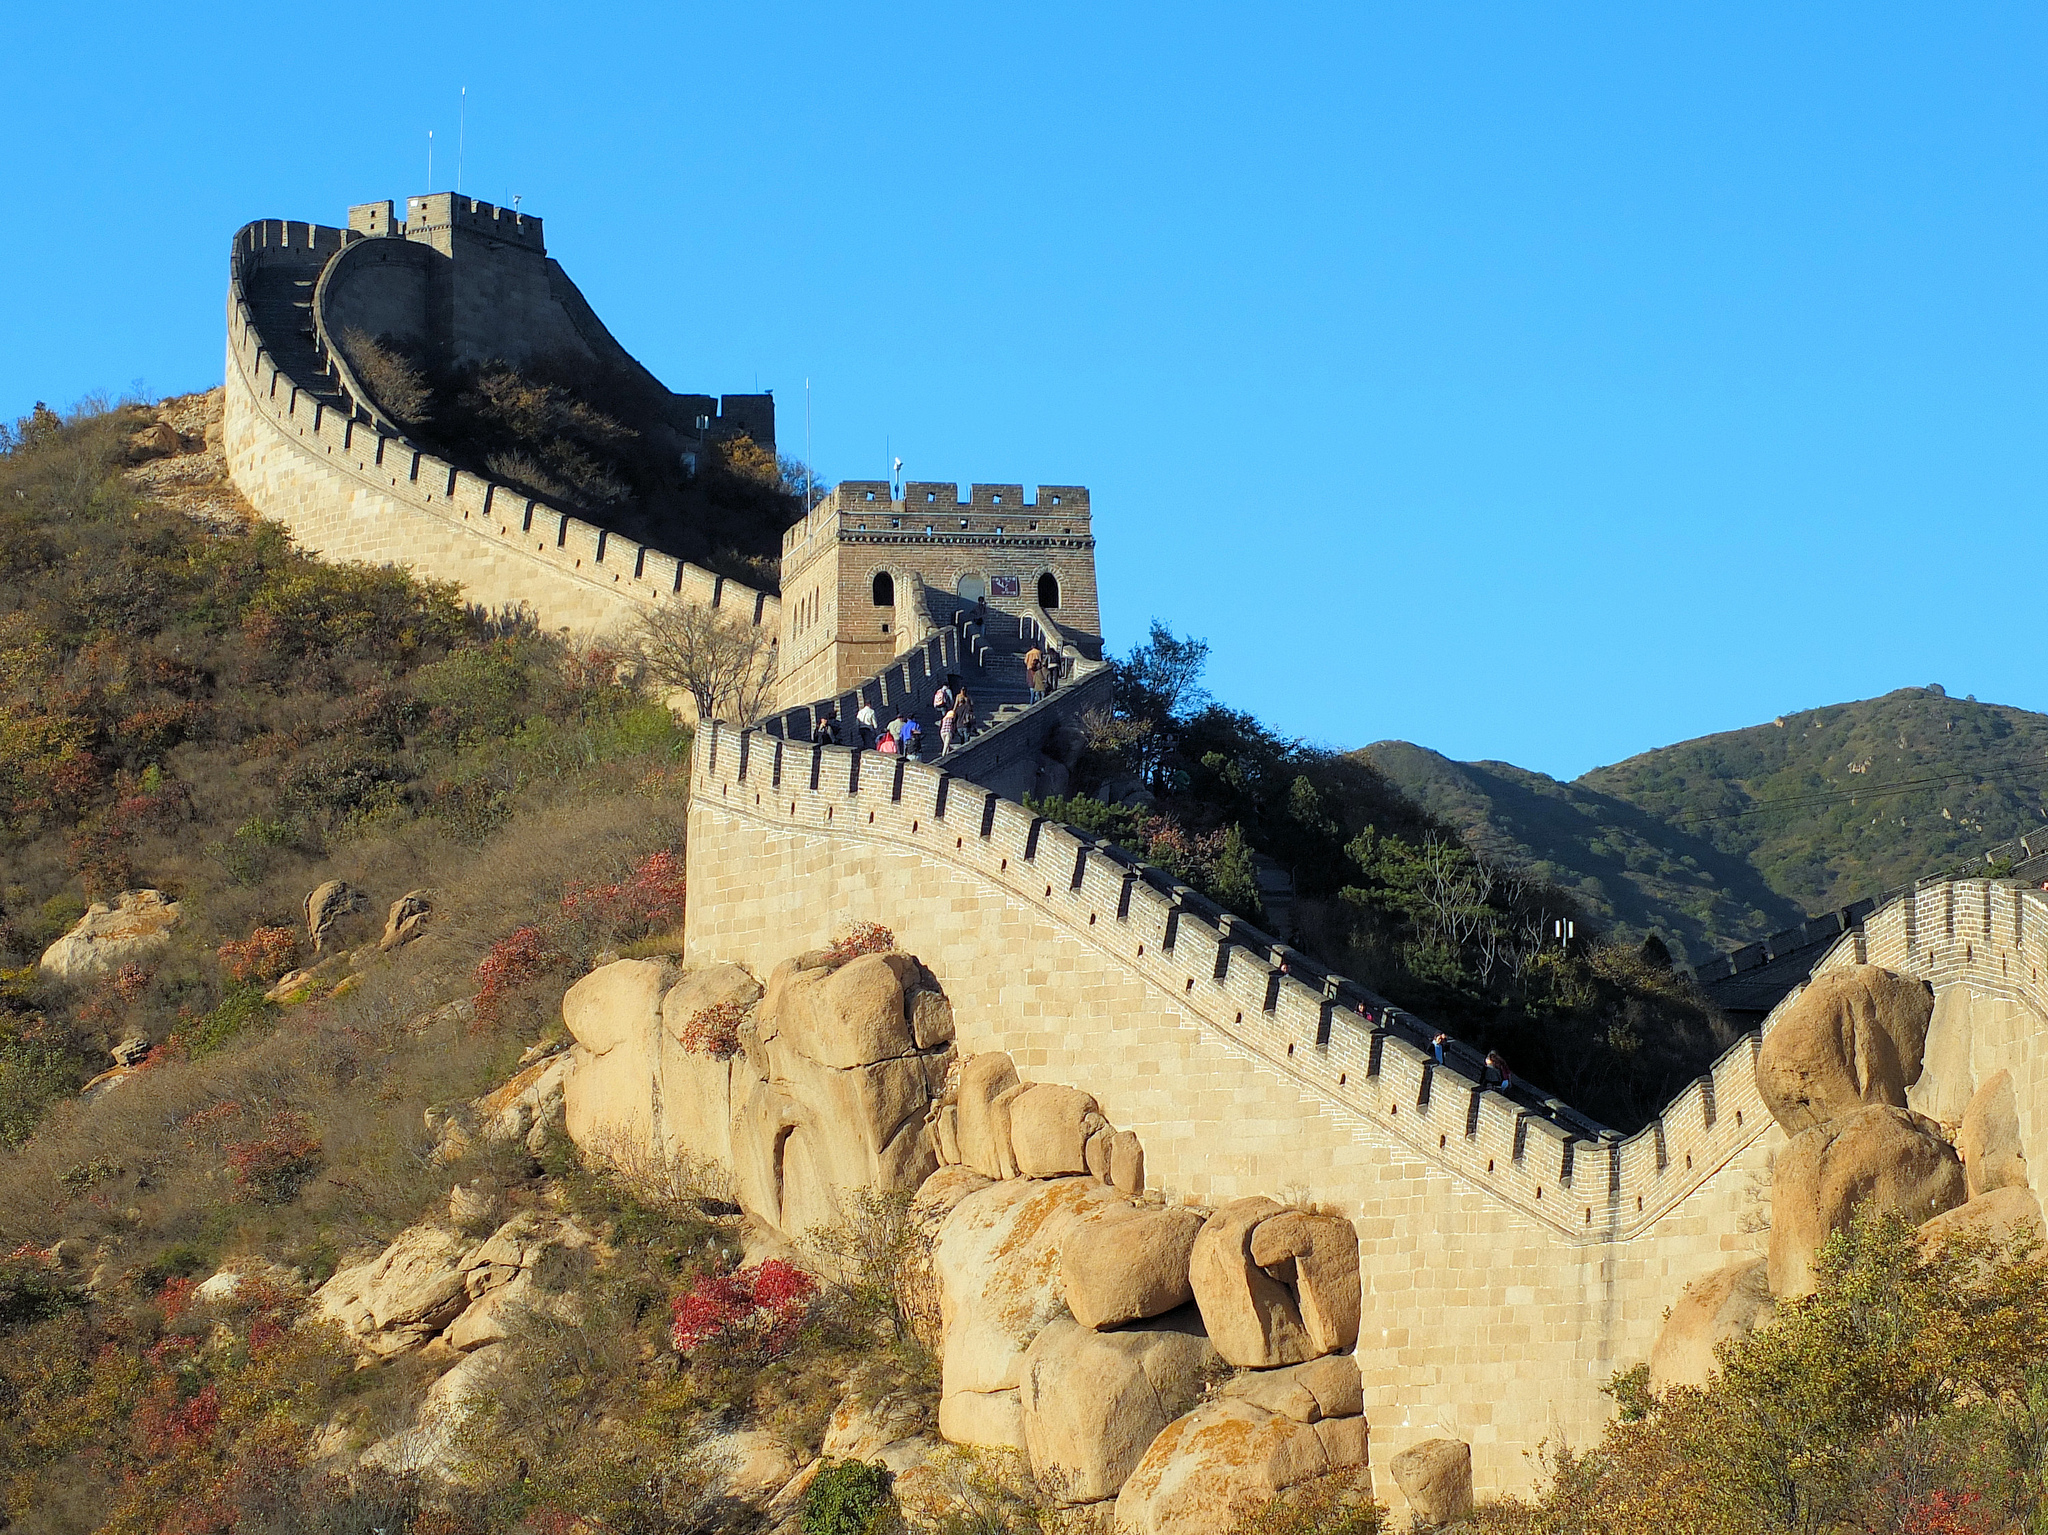 The Great Wall of China is definitely one of the best historical attractions in China